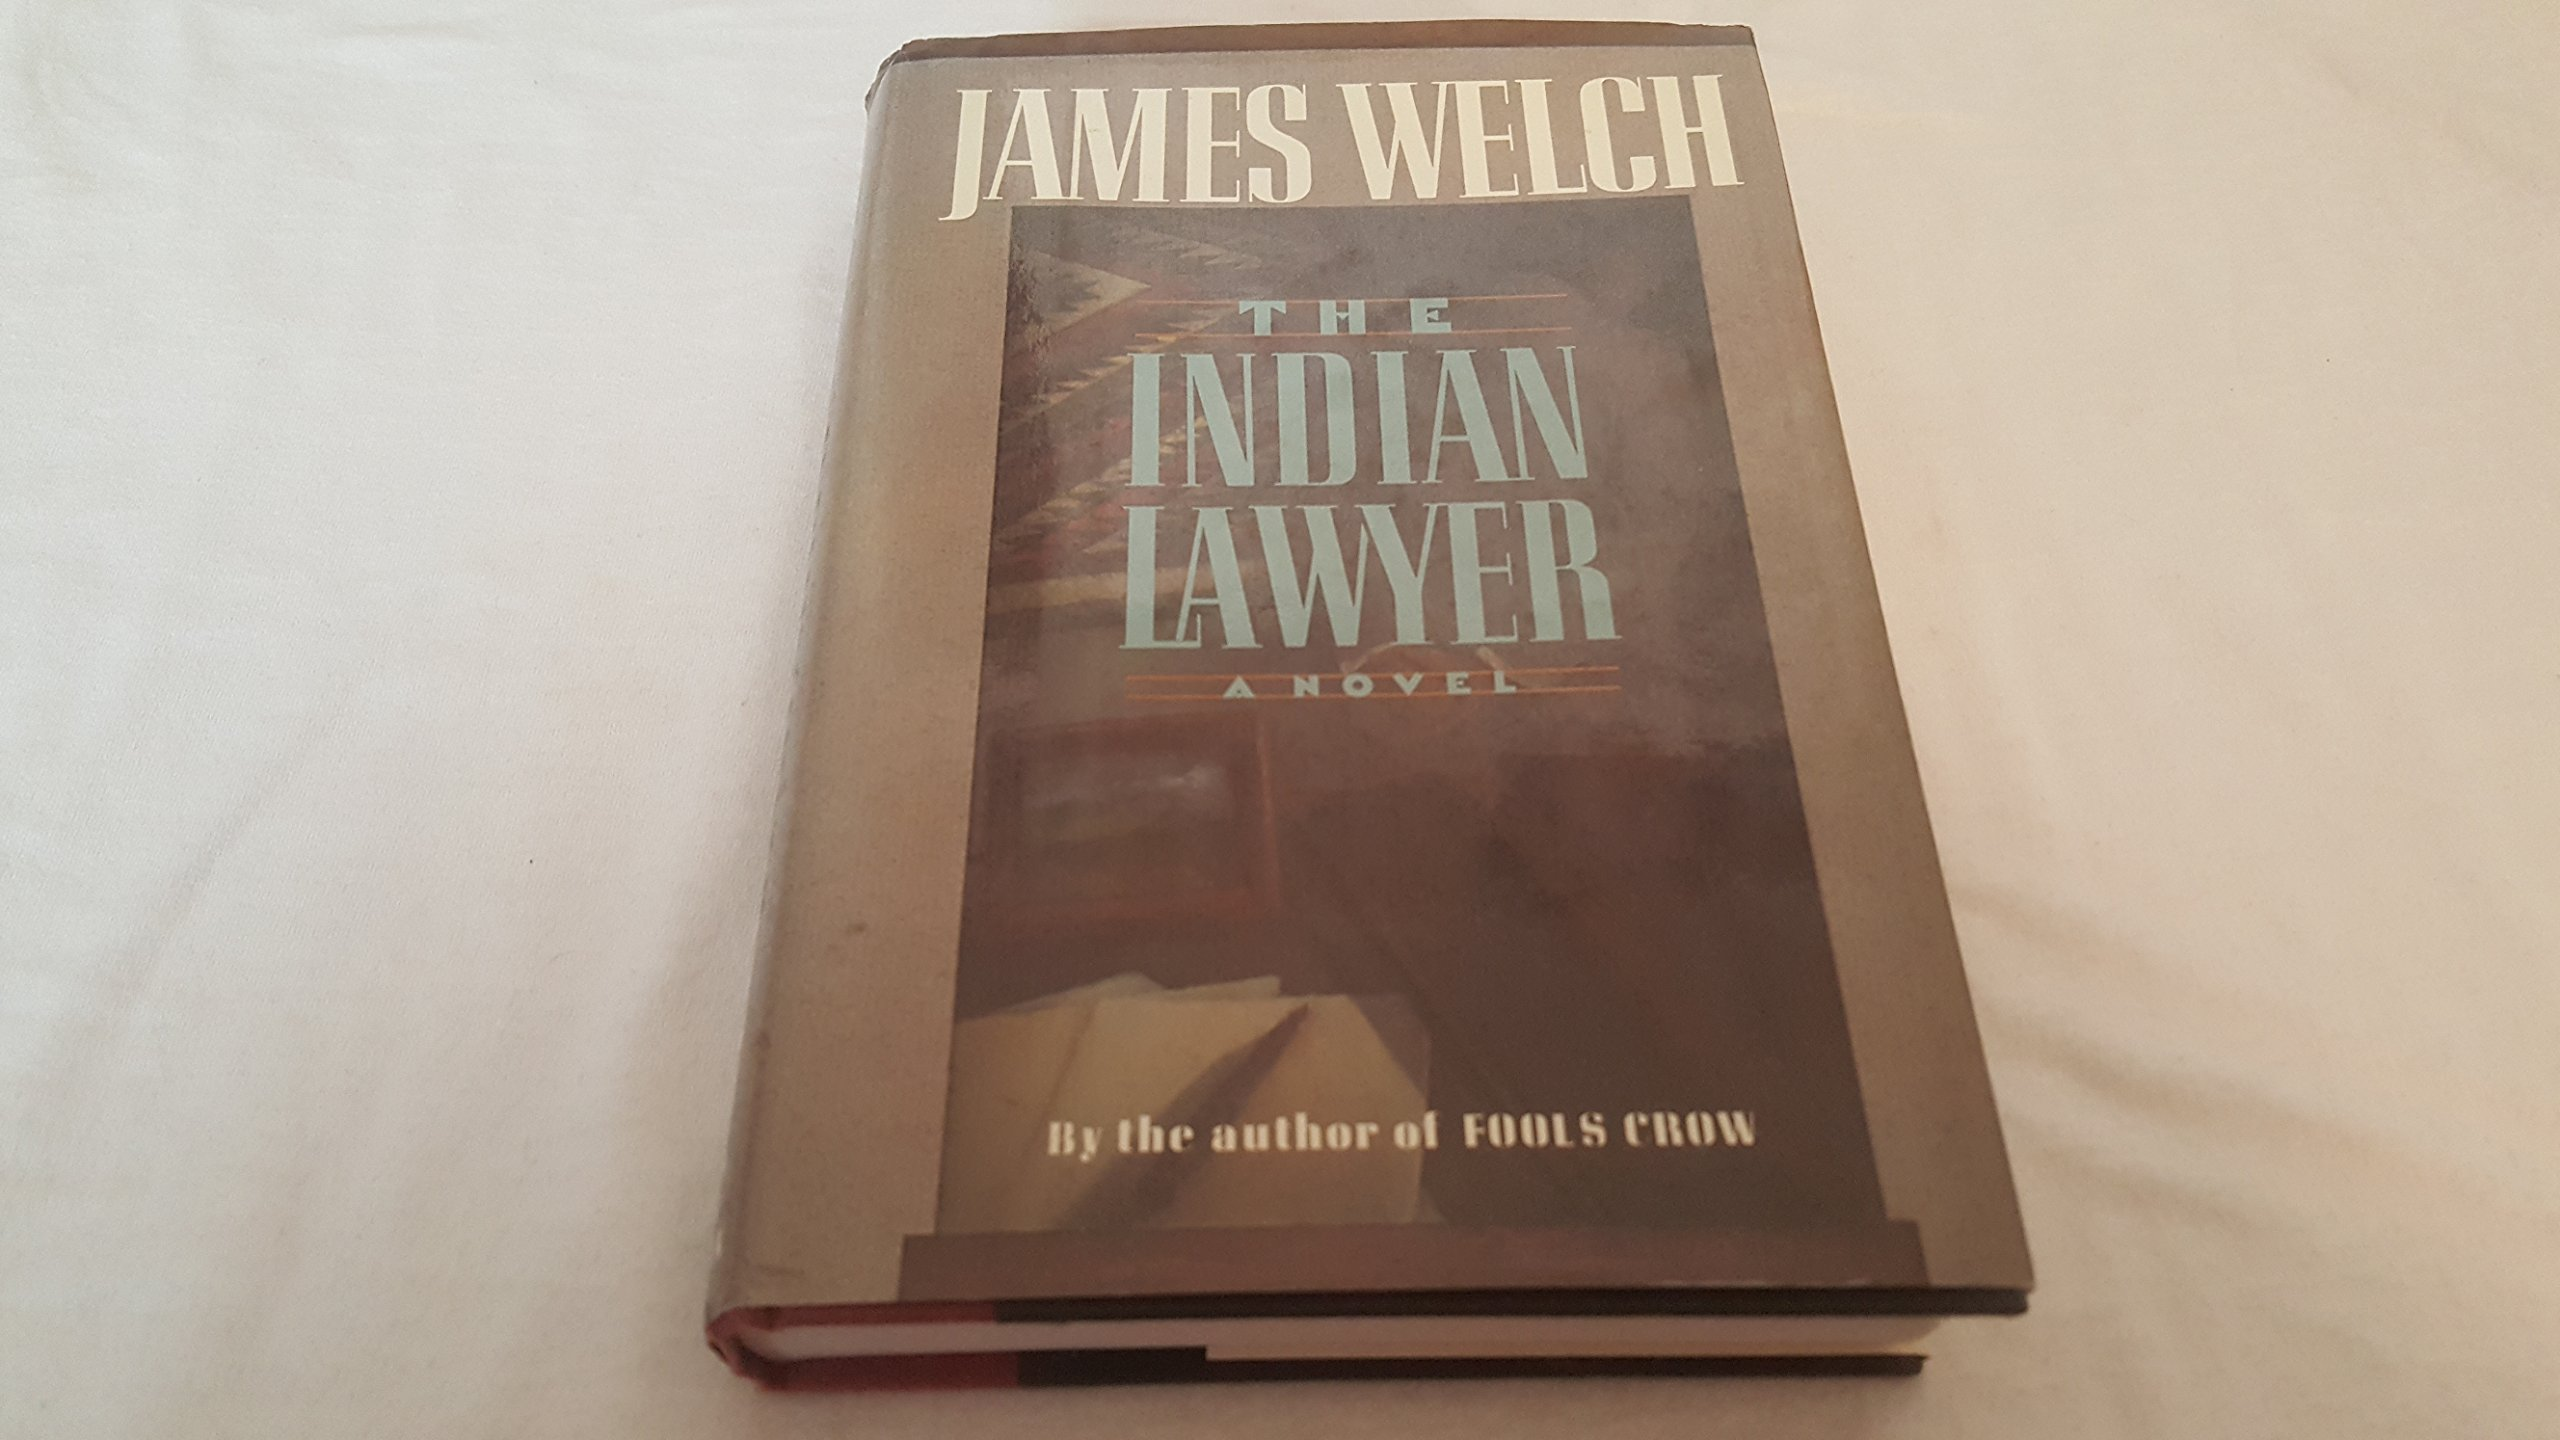 The Indian Lawyer, Welch, James